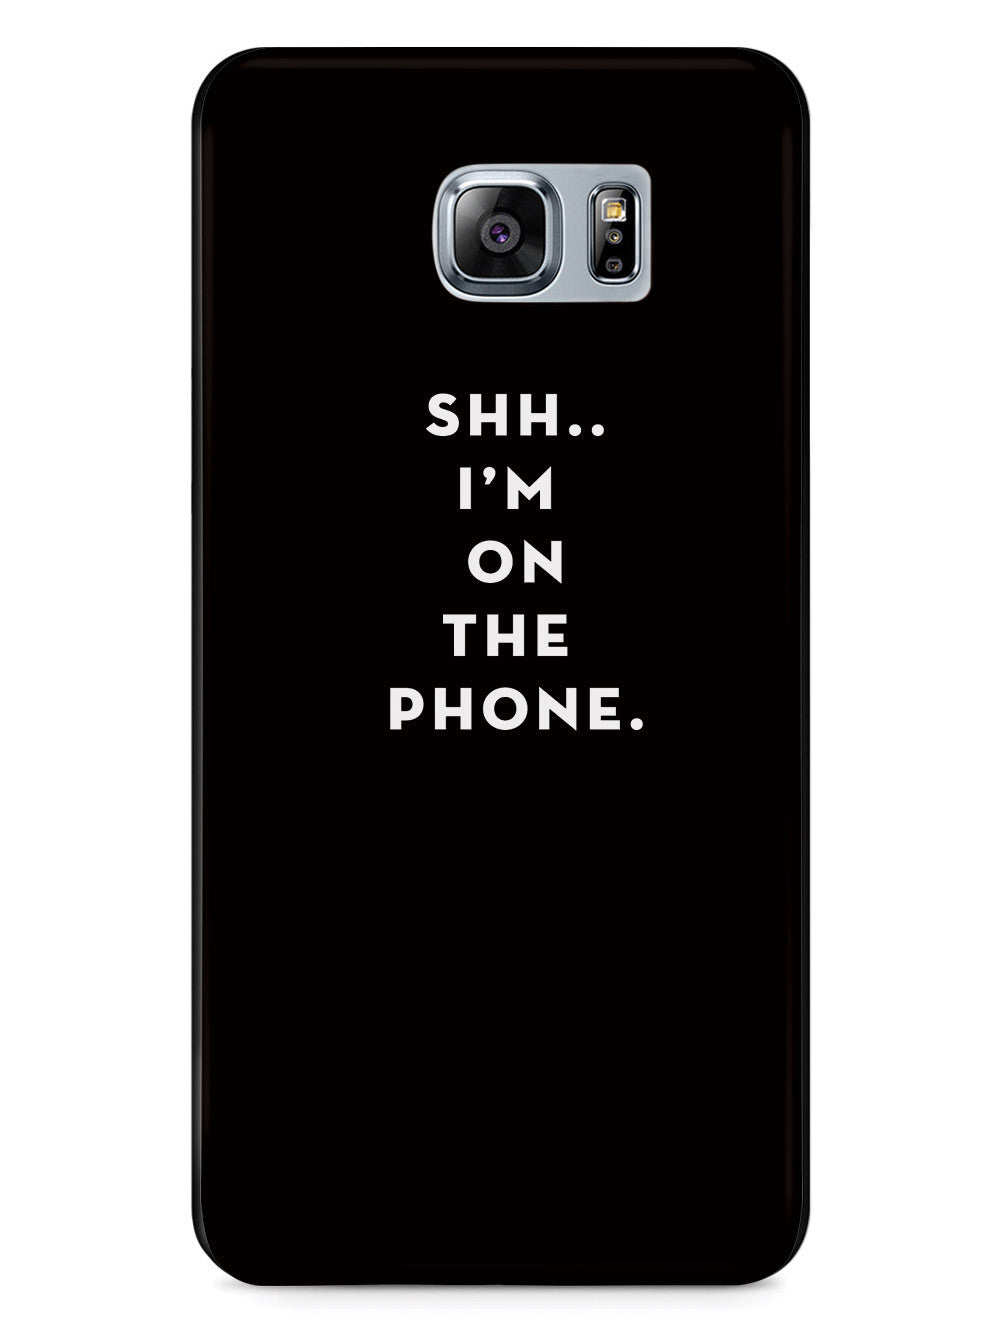 Shh..I'm on the Phone - Humor Funny Case